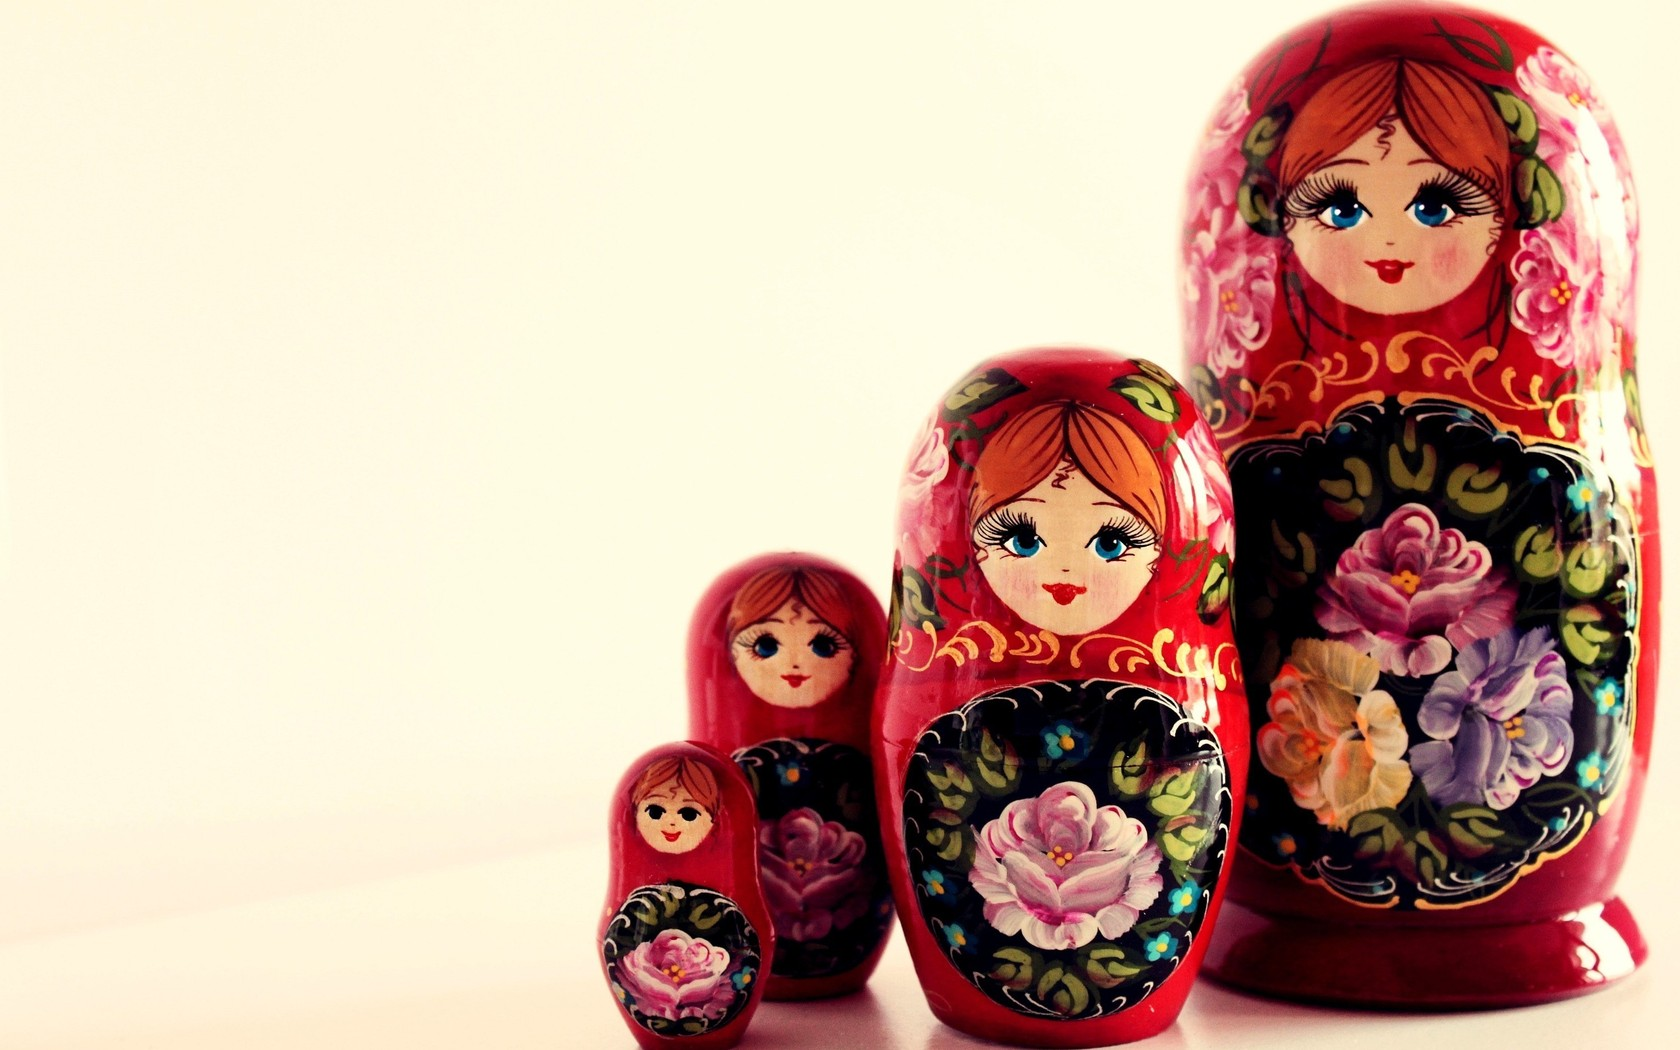 dolls, background, four souvenir